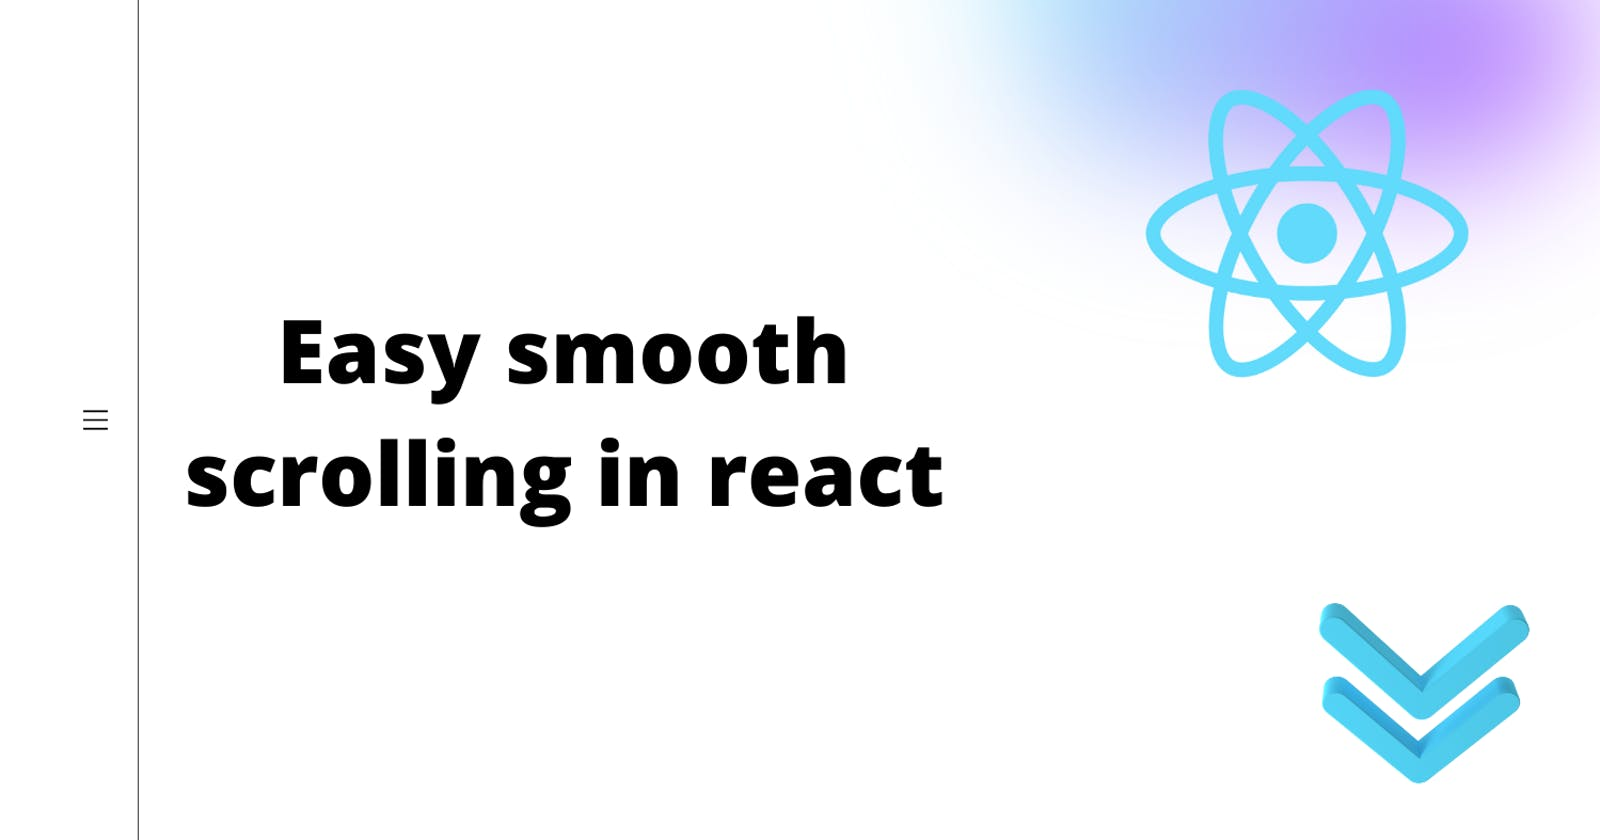 Easy smooth scrolling in react